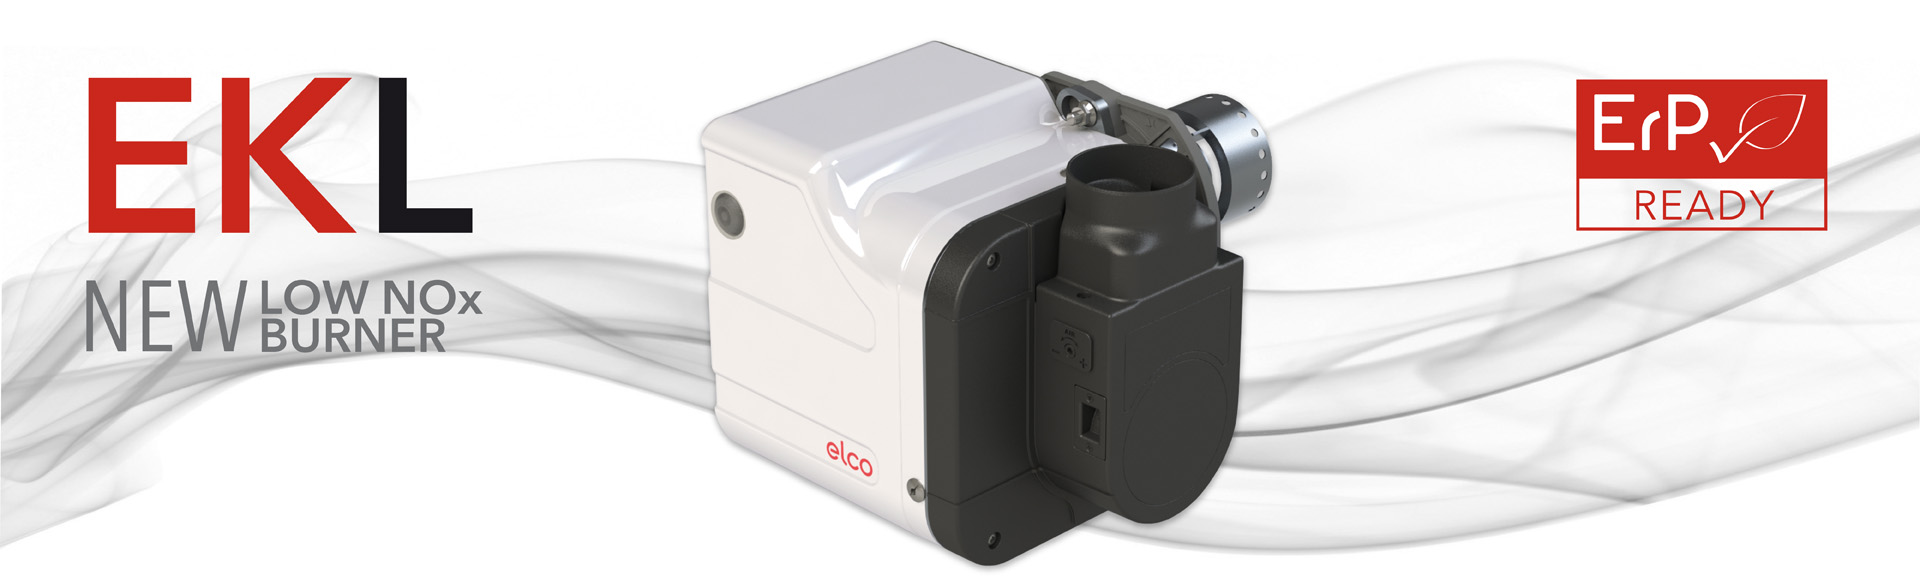 Elco Burners Fit for the future: ELCO enters UK & Ireland OEM market with new low NOx model